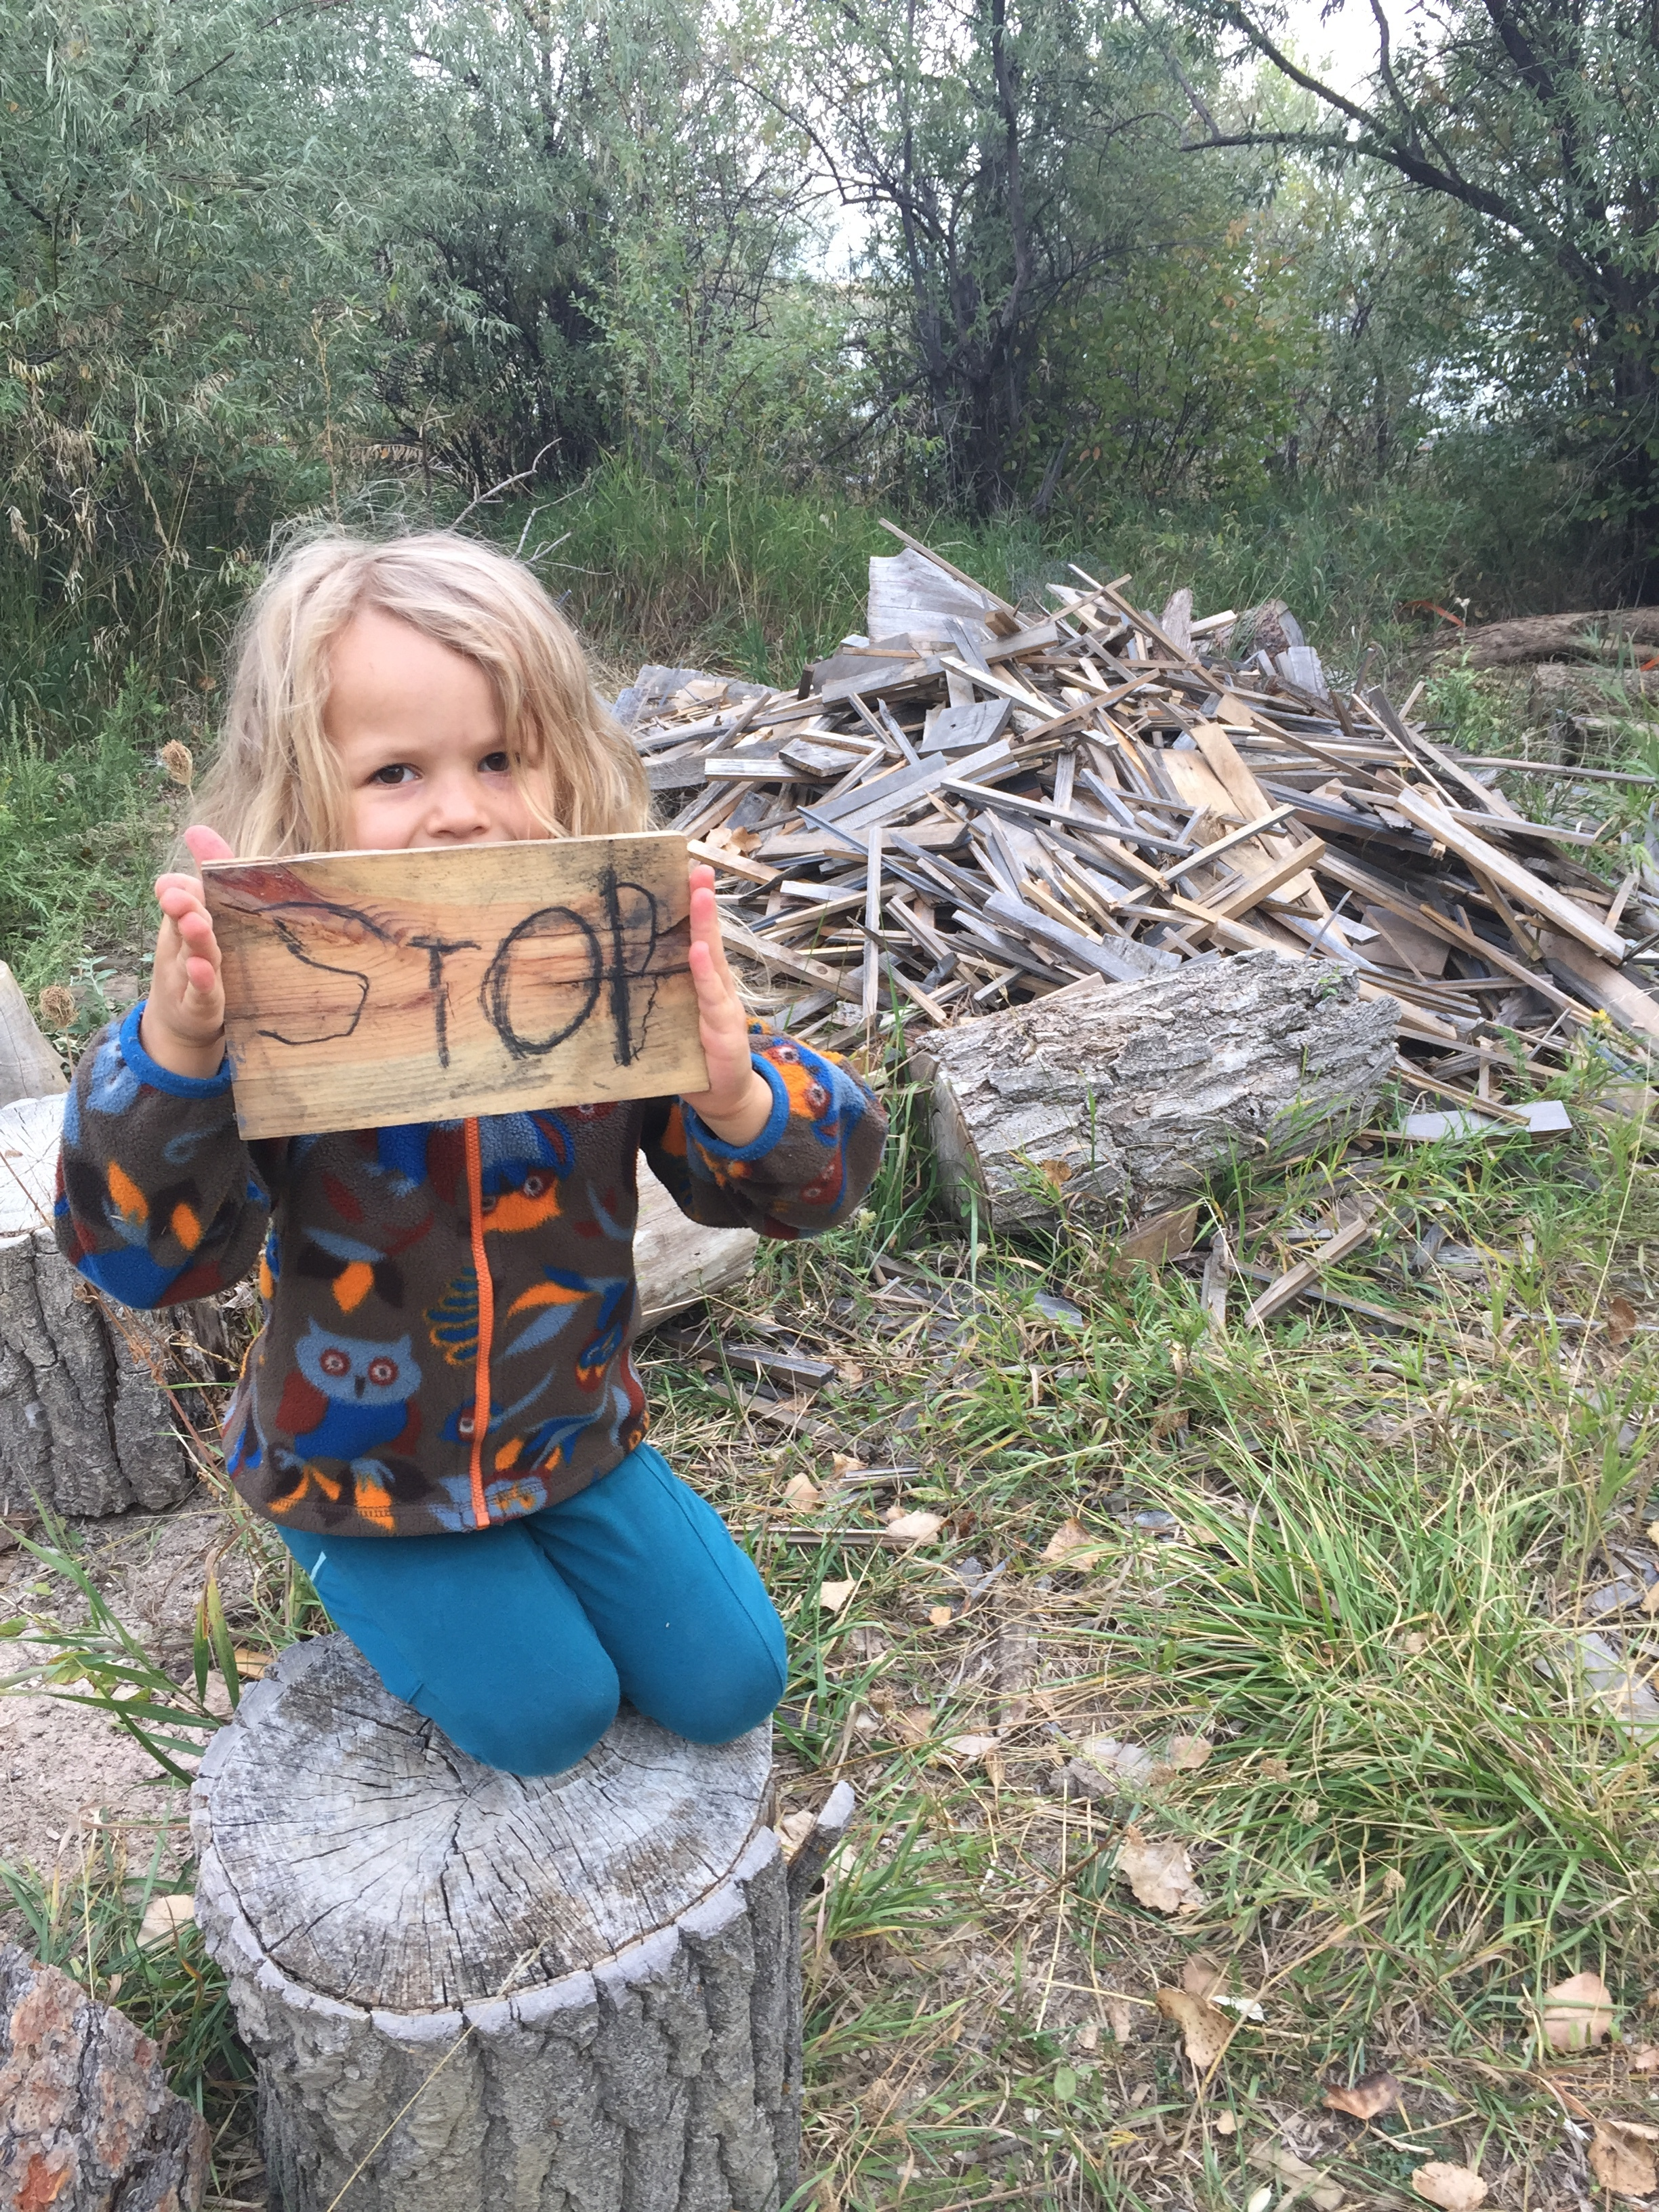 There isn't much you can do indoors that you can't do outdoors! We even have early literacy going on in the forest. The kids enjoyed making stop signs one morning using wood scraps and charcoal. The tricky part was attaching the sign to a post.